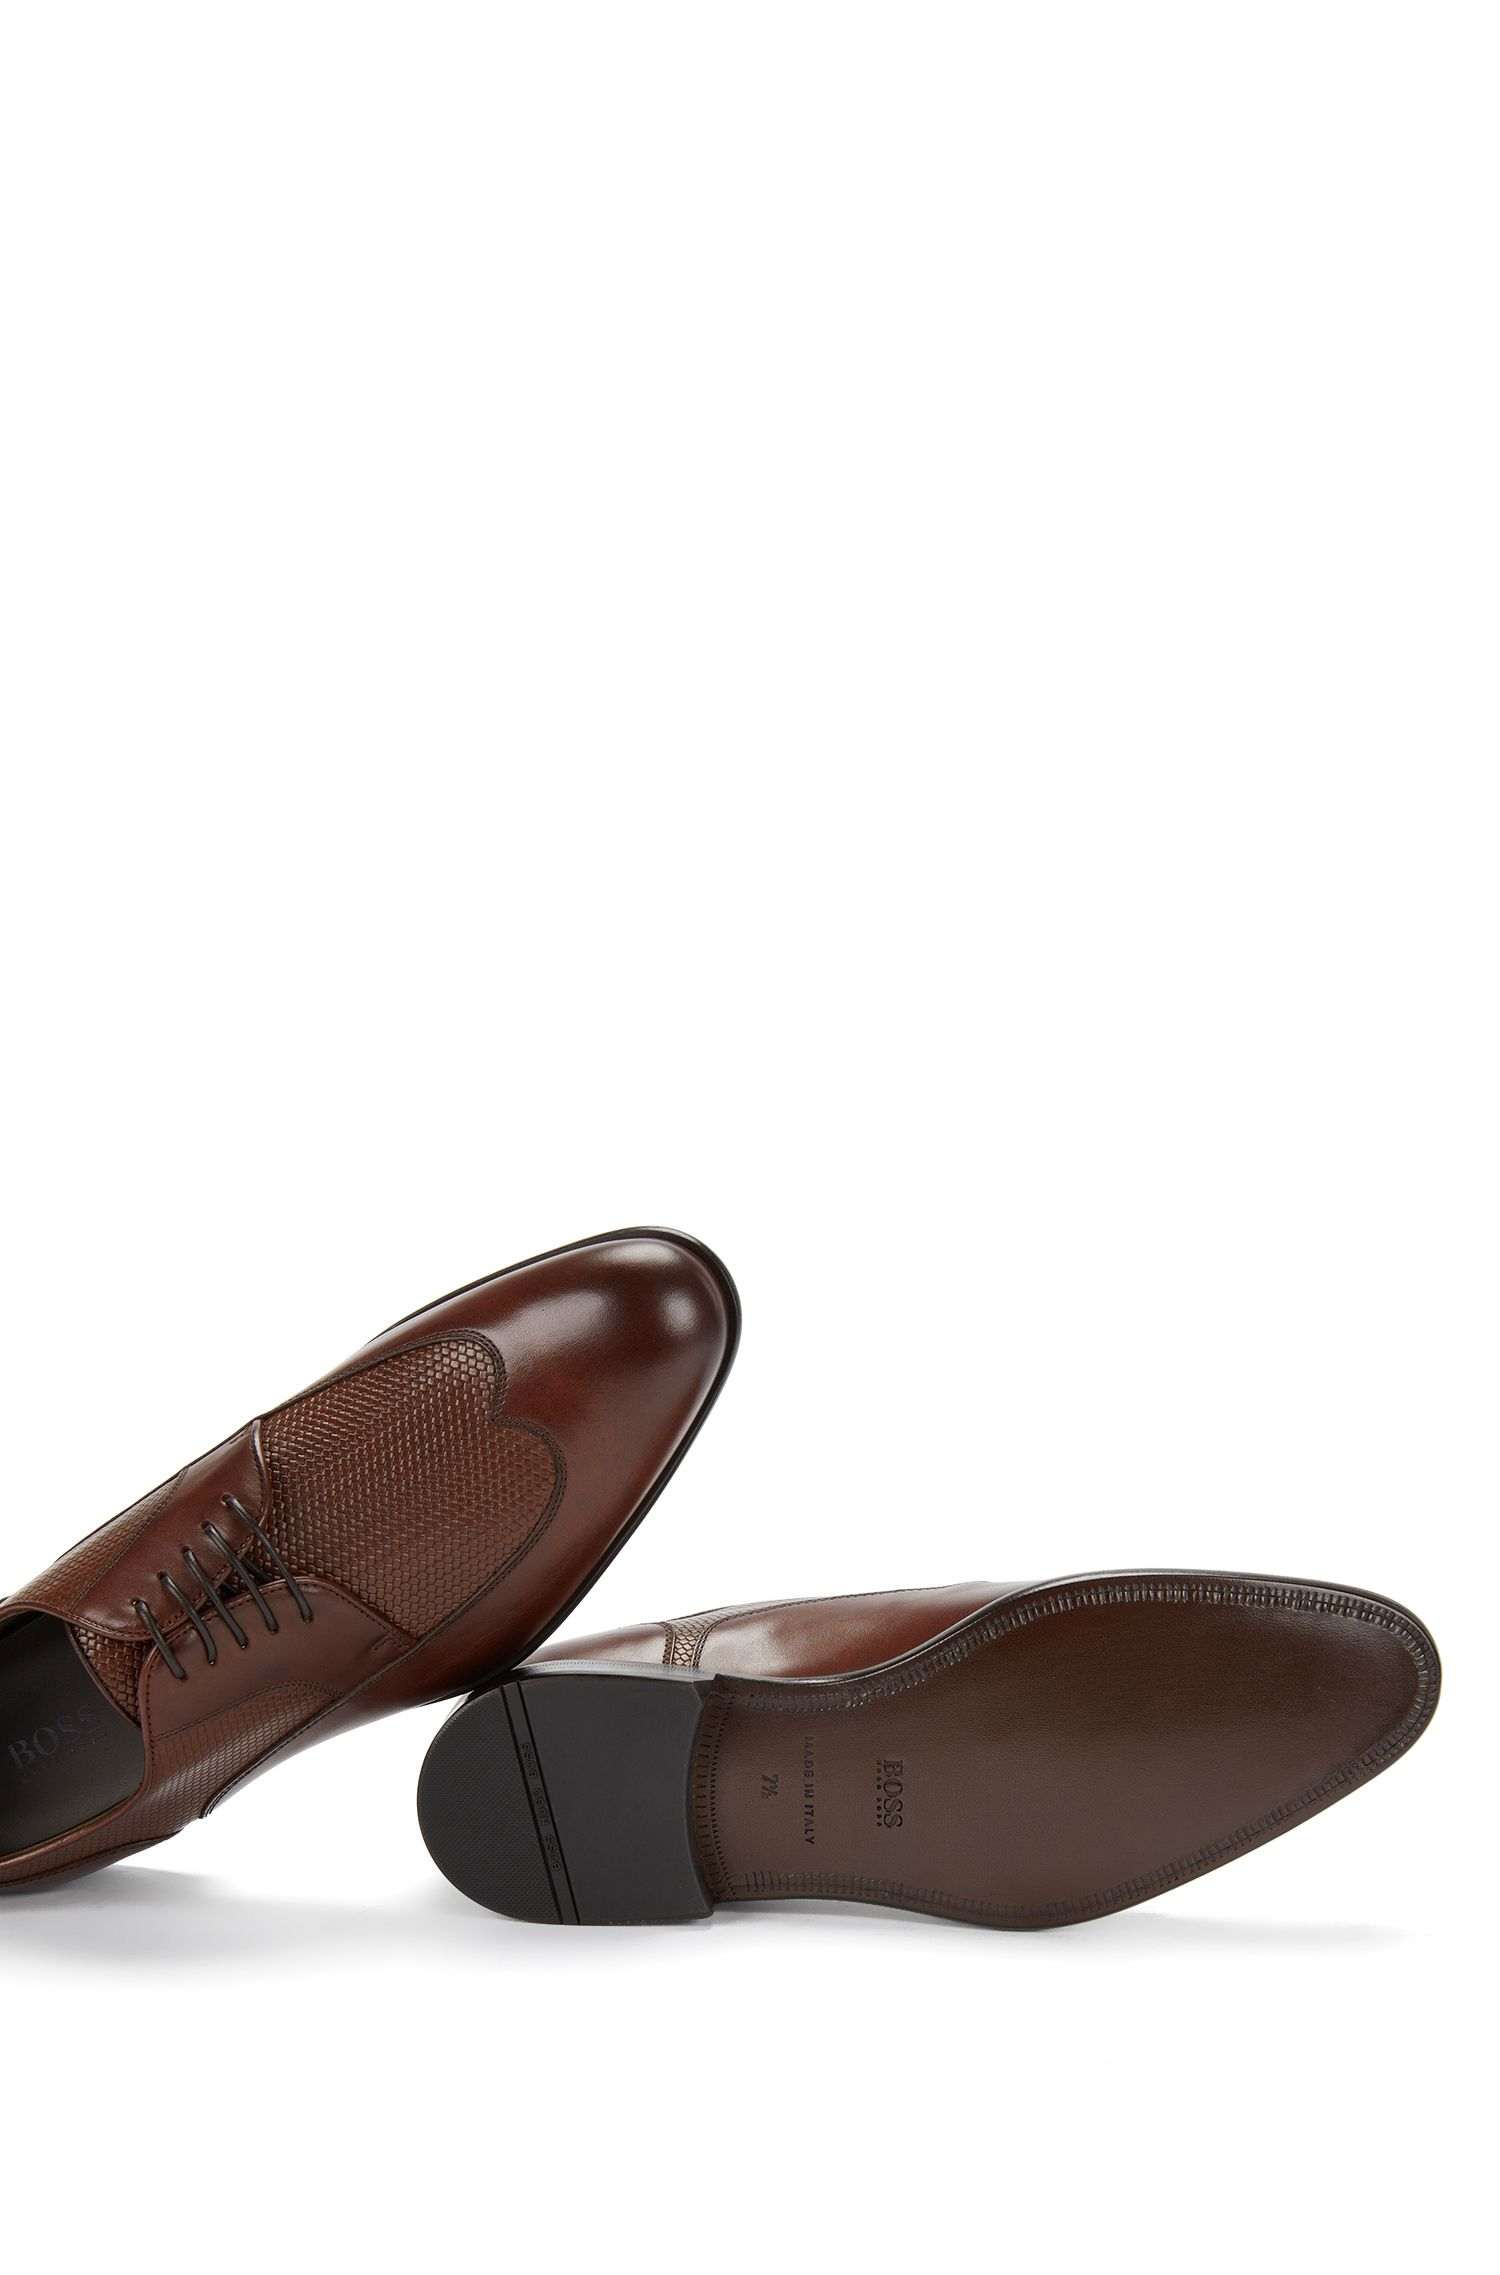 Italian Leather Wingtip Derby Dress Shoe | Maderb, Brown